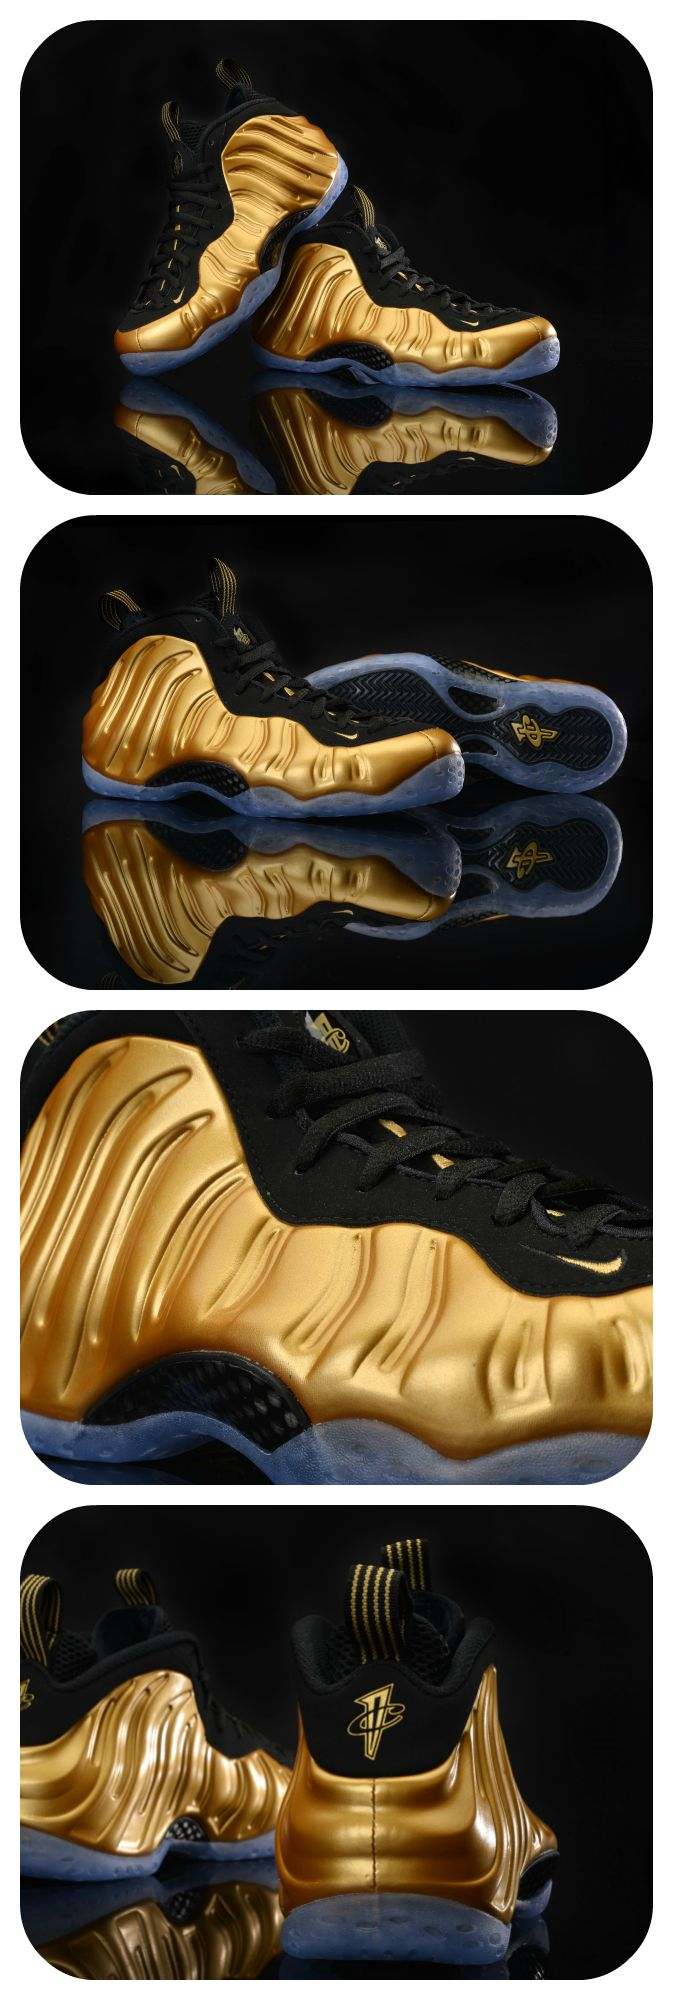 The newest Nike Air Foamposite One's are going for the gold. Cop them tomorrow. #Casual #Sneakers